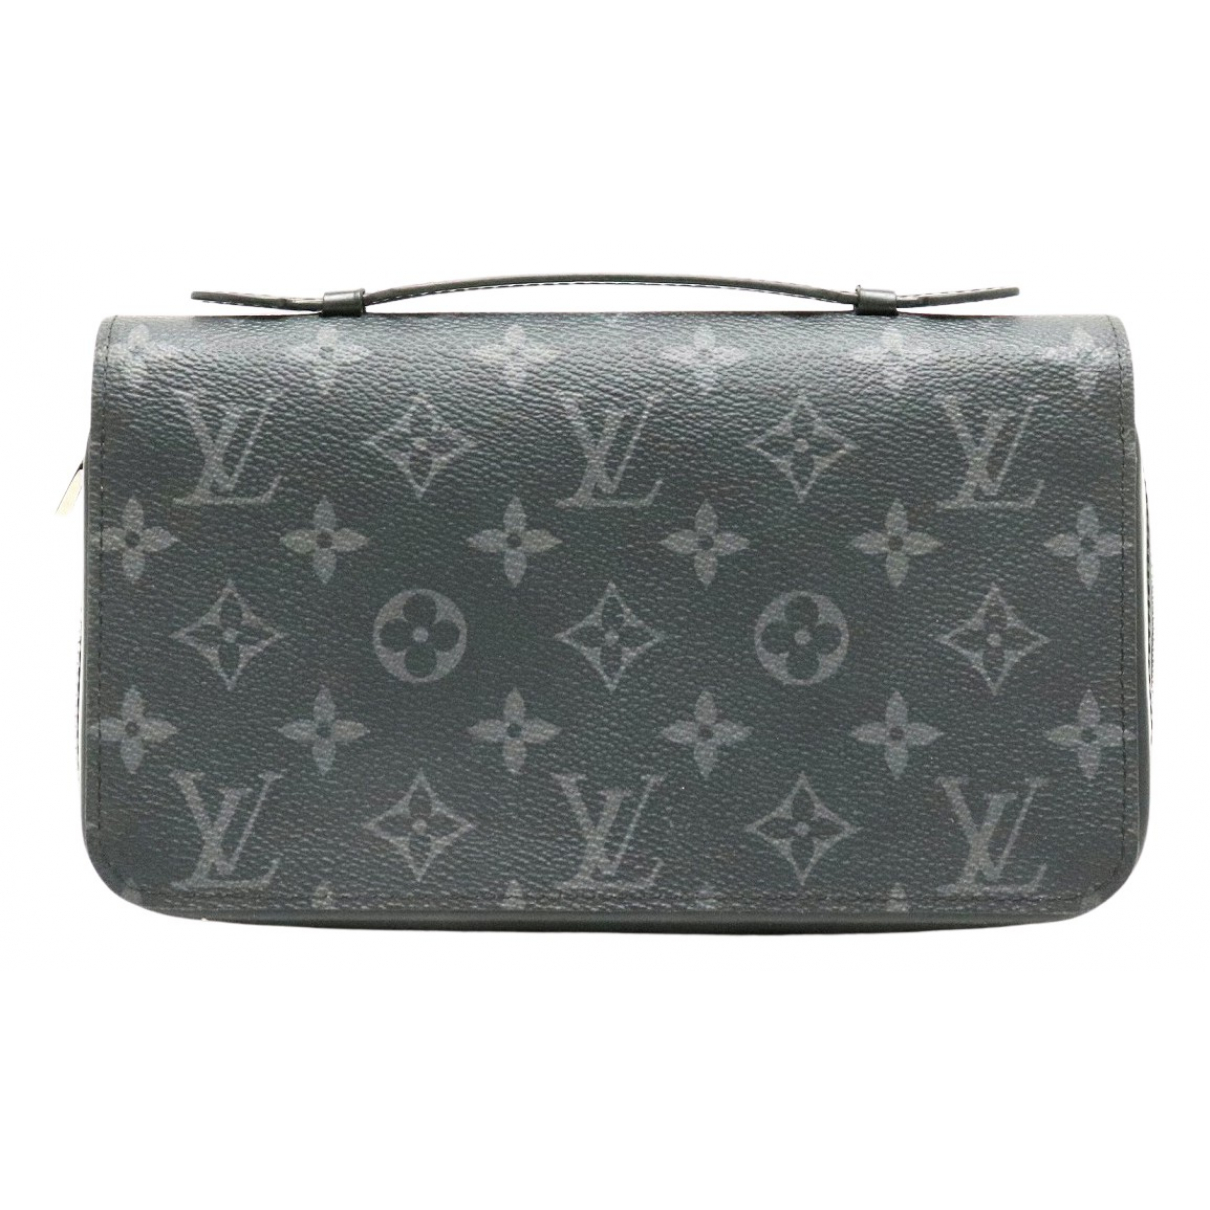 Louis Vuitton Zippy XL Black Cloth Small bag, wallet & cases for Men N